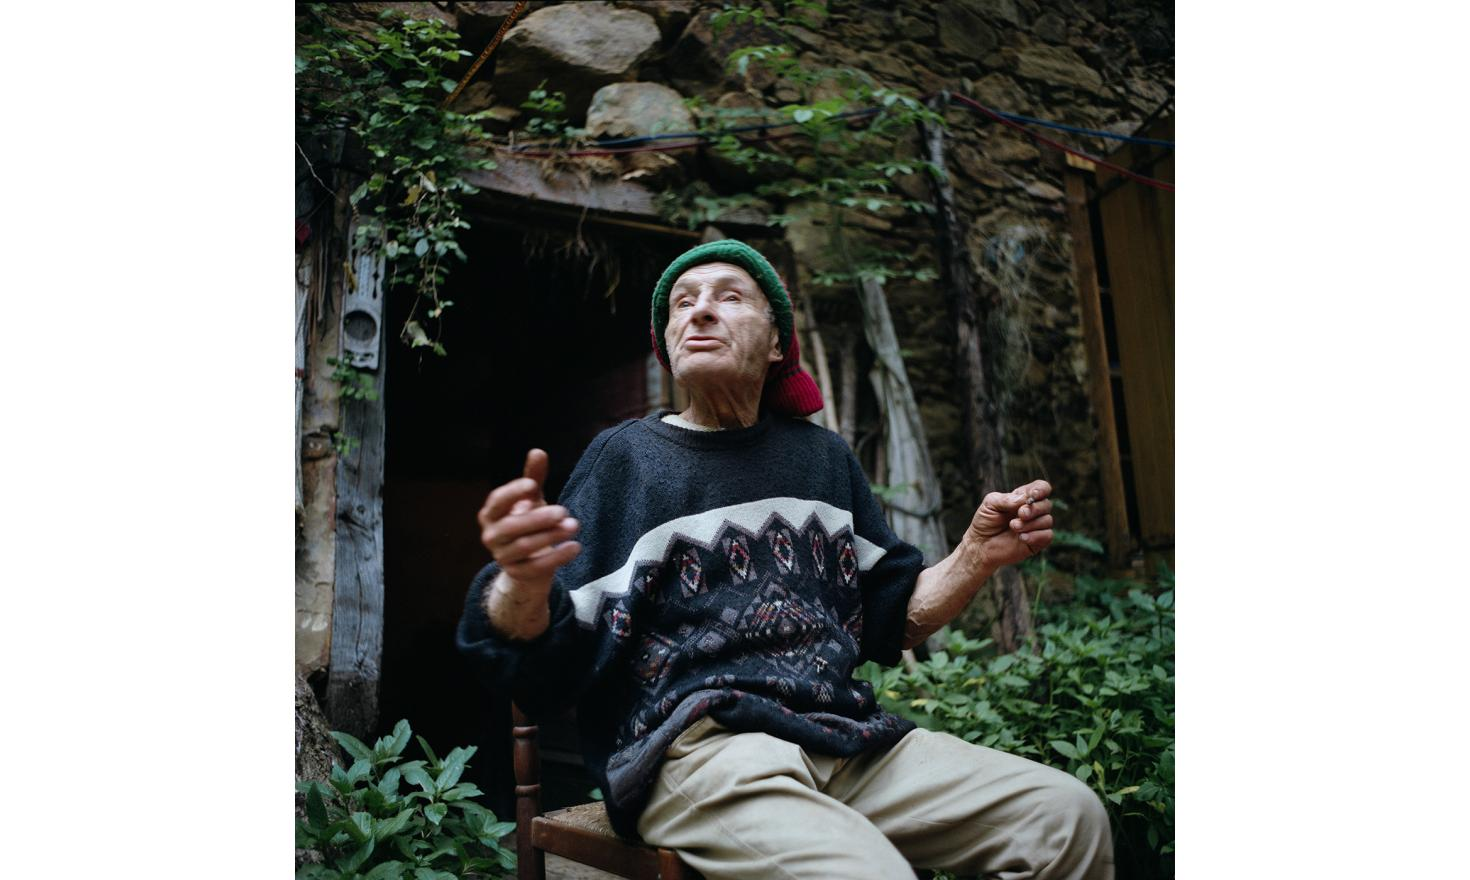 The old John,  kind of «ariégeois» shaman is old,  around 70-80. He lives in a very old house that has never been modernized, hidden in the middle of  the vegetation. He eats almost exclusively wild plants and he also has a small garden and 4 chicken.